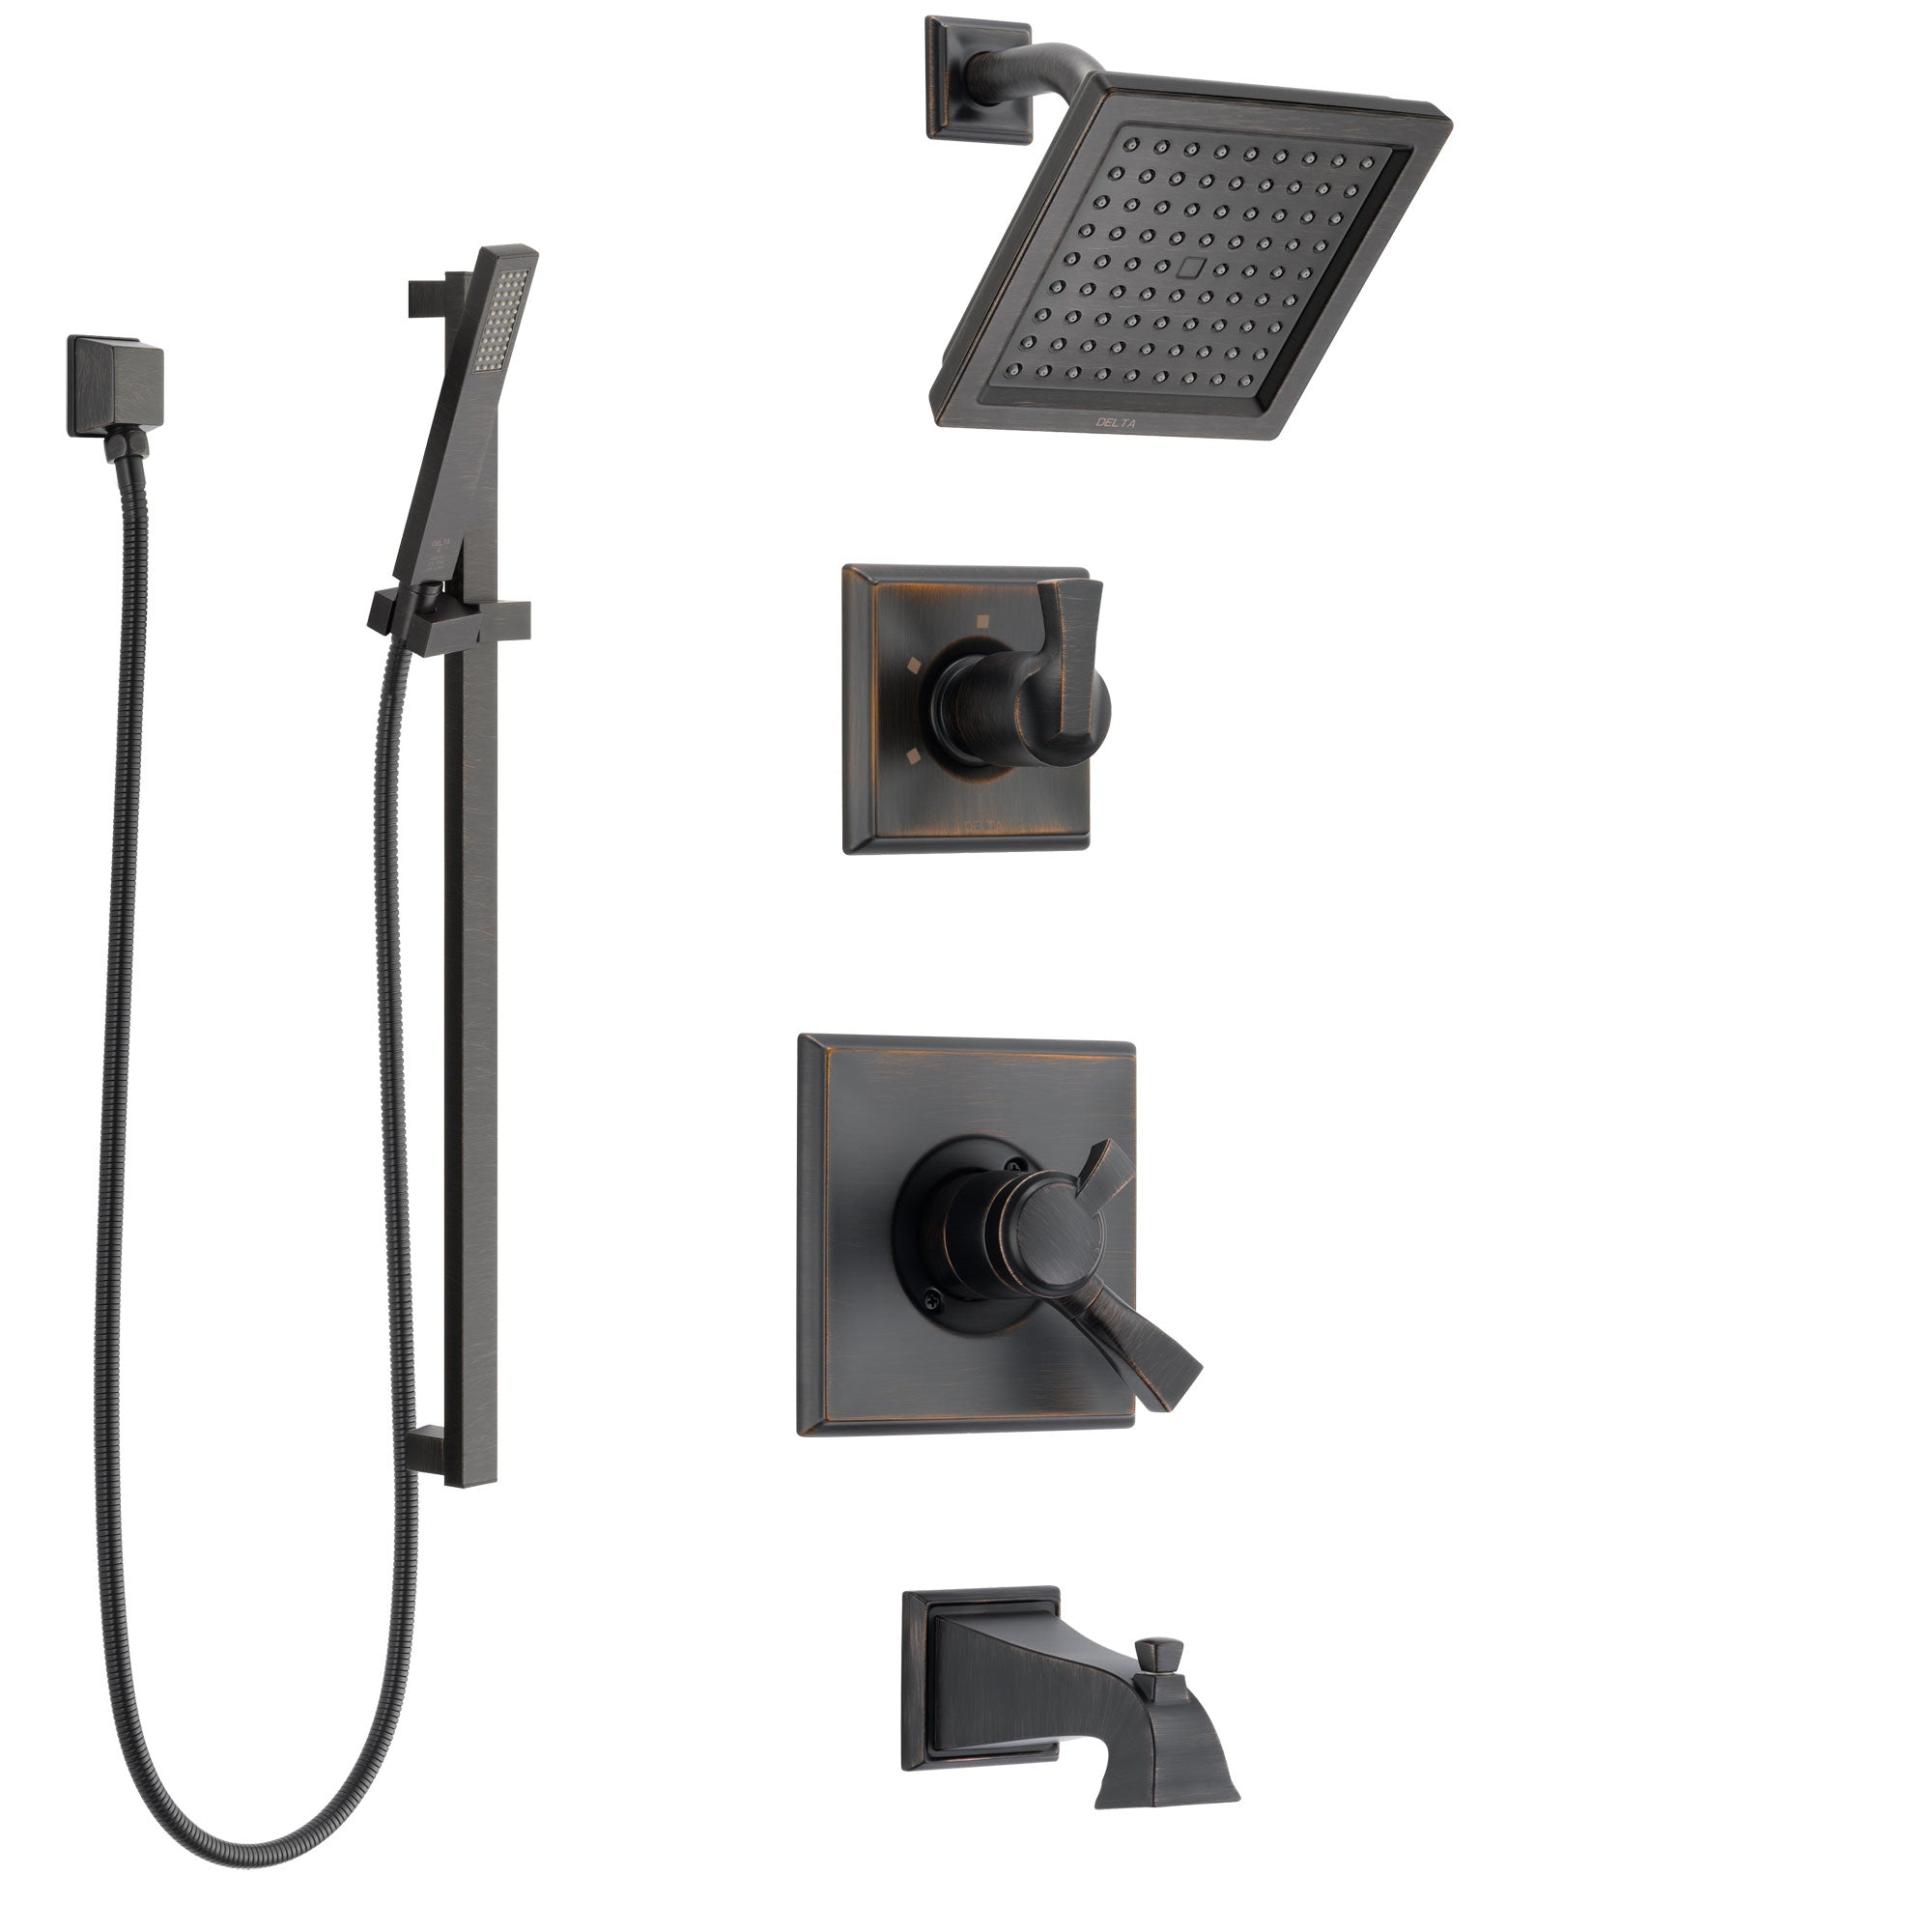 Delta Dryden Venetian Bronze Tub and Shower System with Dual Control Handle, 3-Setting Diverter, Showerhead, and Hand Shower with Slidebar SS174511RB4